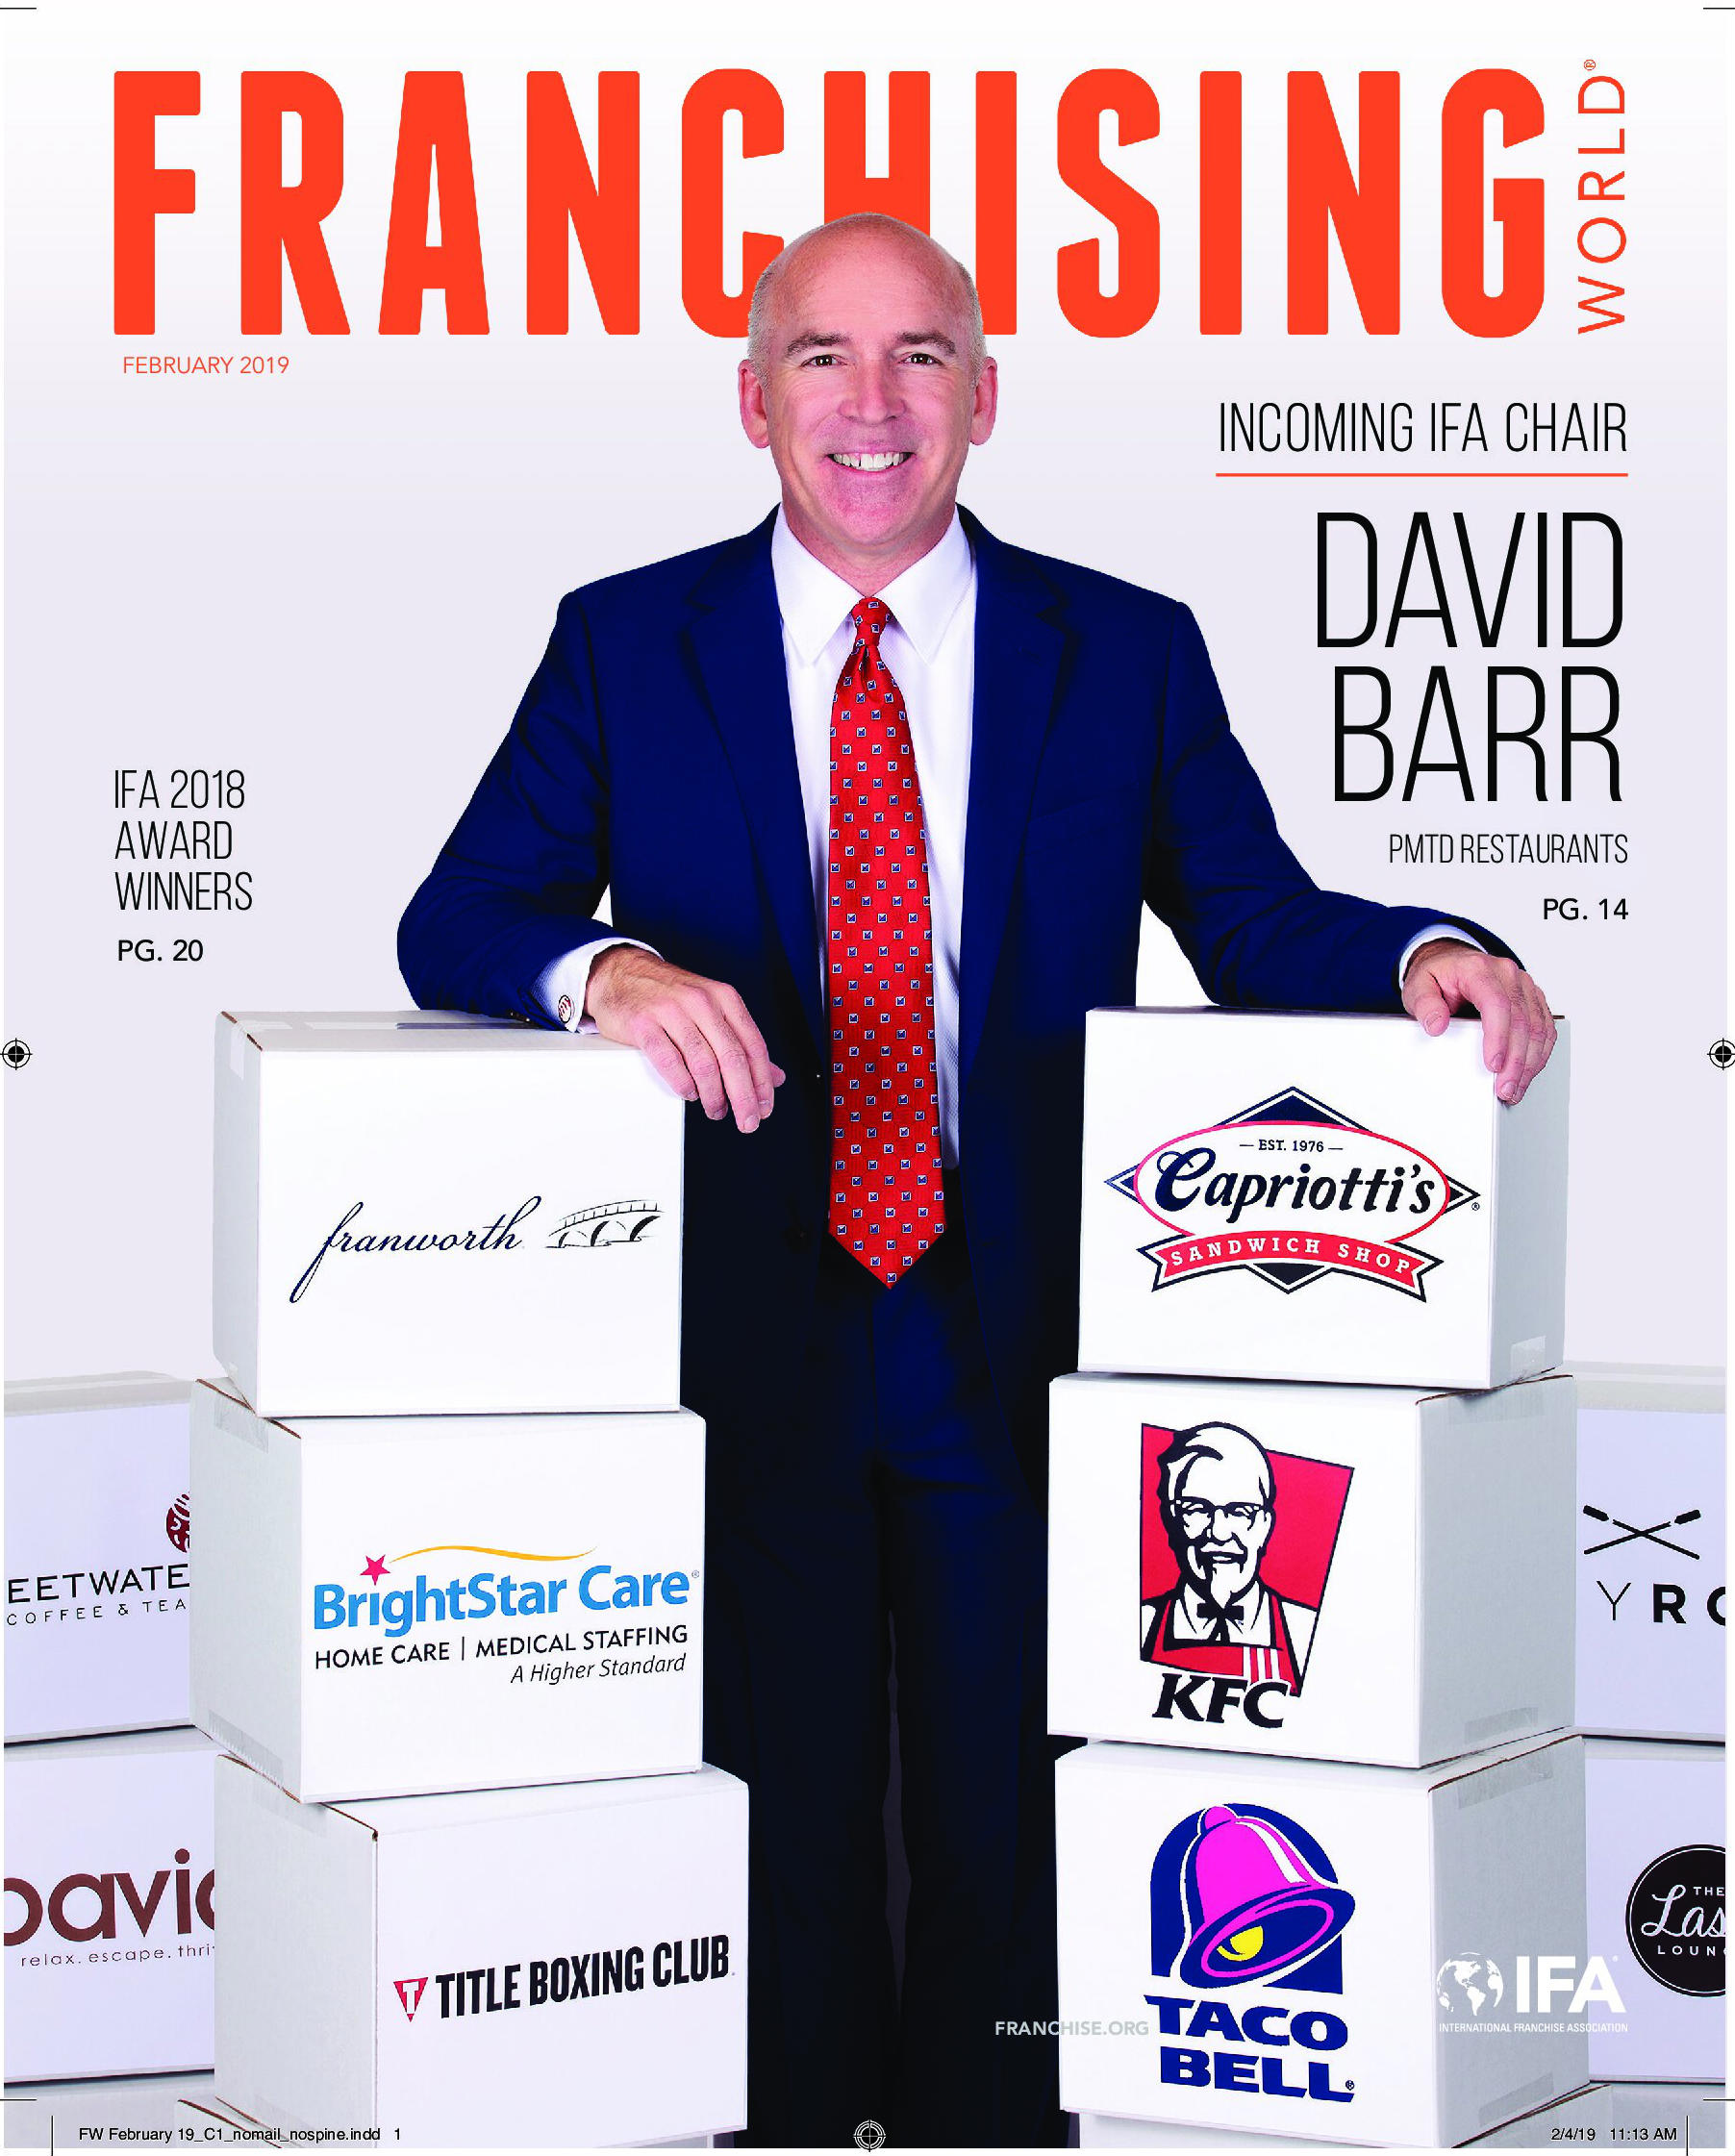 New IFA Chair David Barr of PMTD Restaurants on the cover of Franchising World.